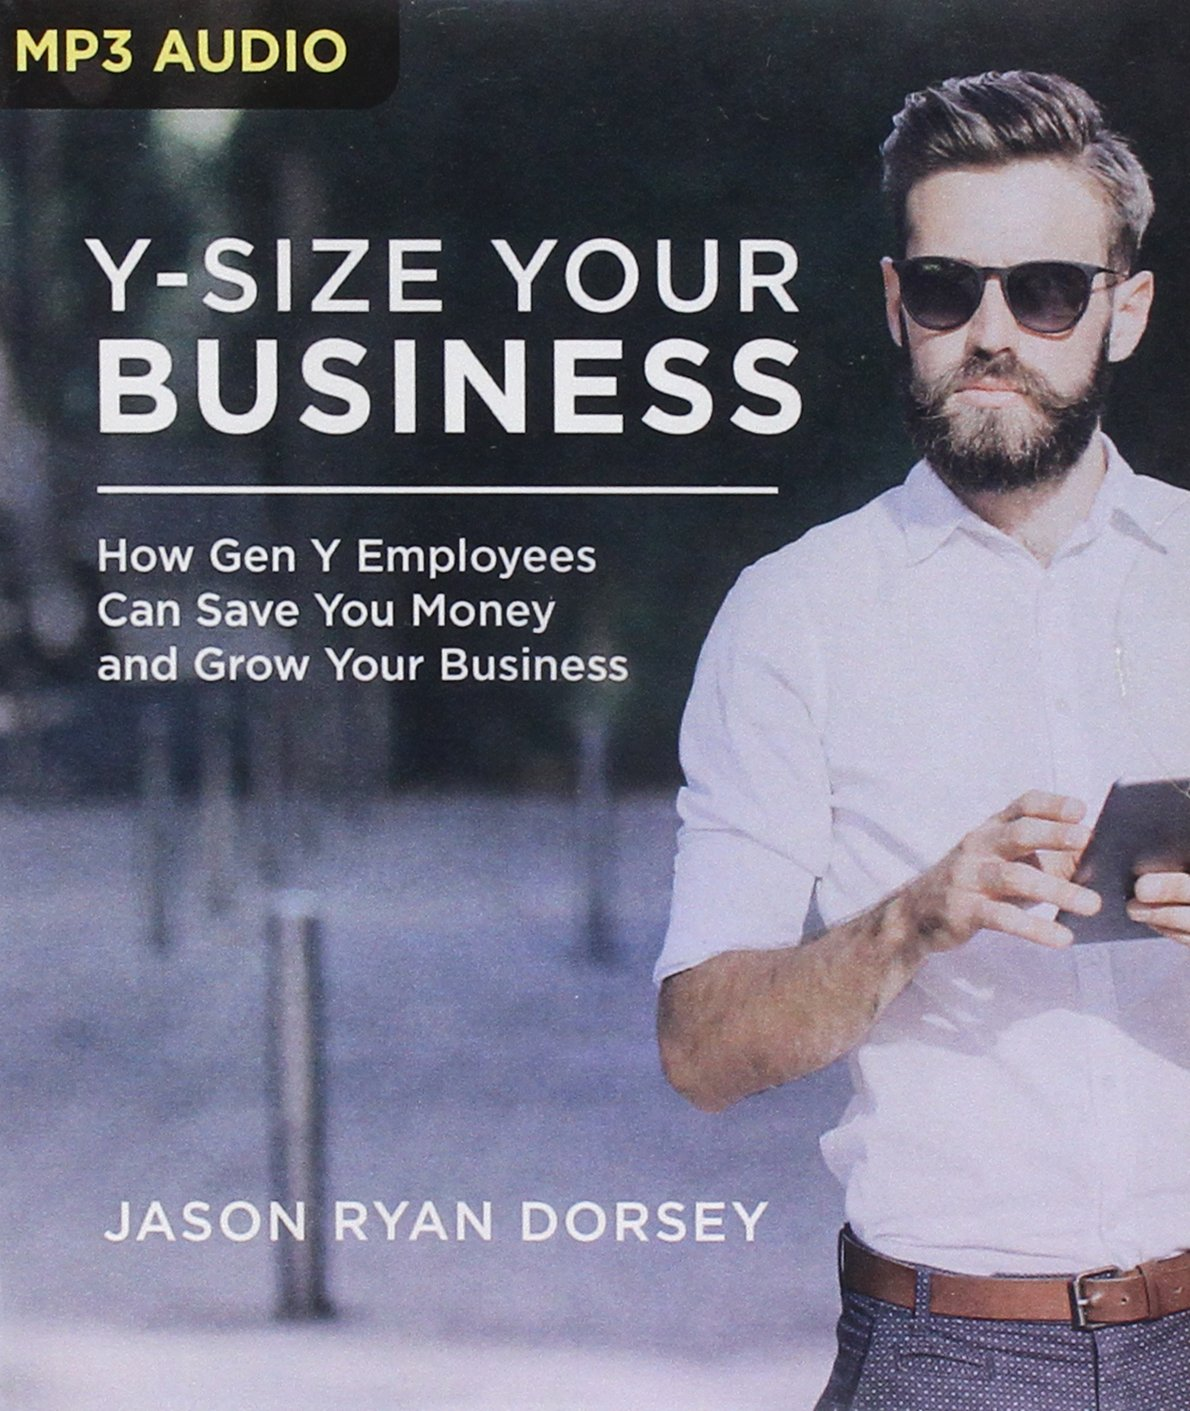 Y-Size Your Business: How Gen Y Employees Can Save You Money and Grow Your  Business: Jason Ryan Dorsey, Joshua Swanson: 0889290450128: Amazon.com:  Books